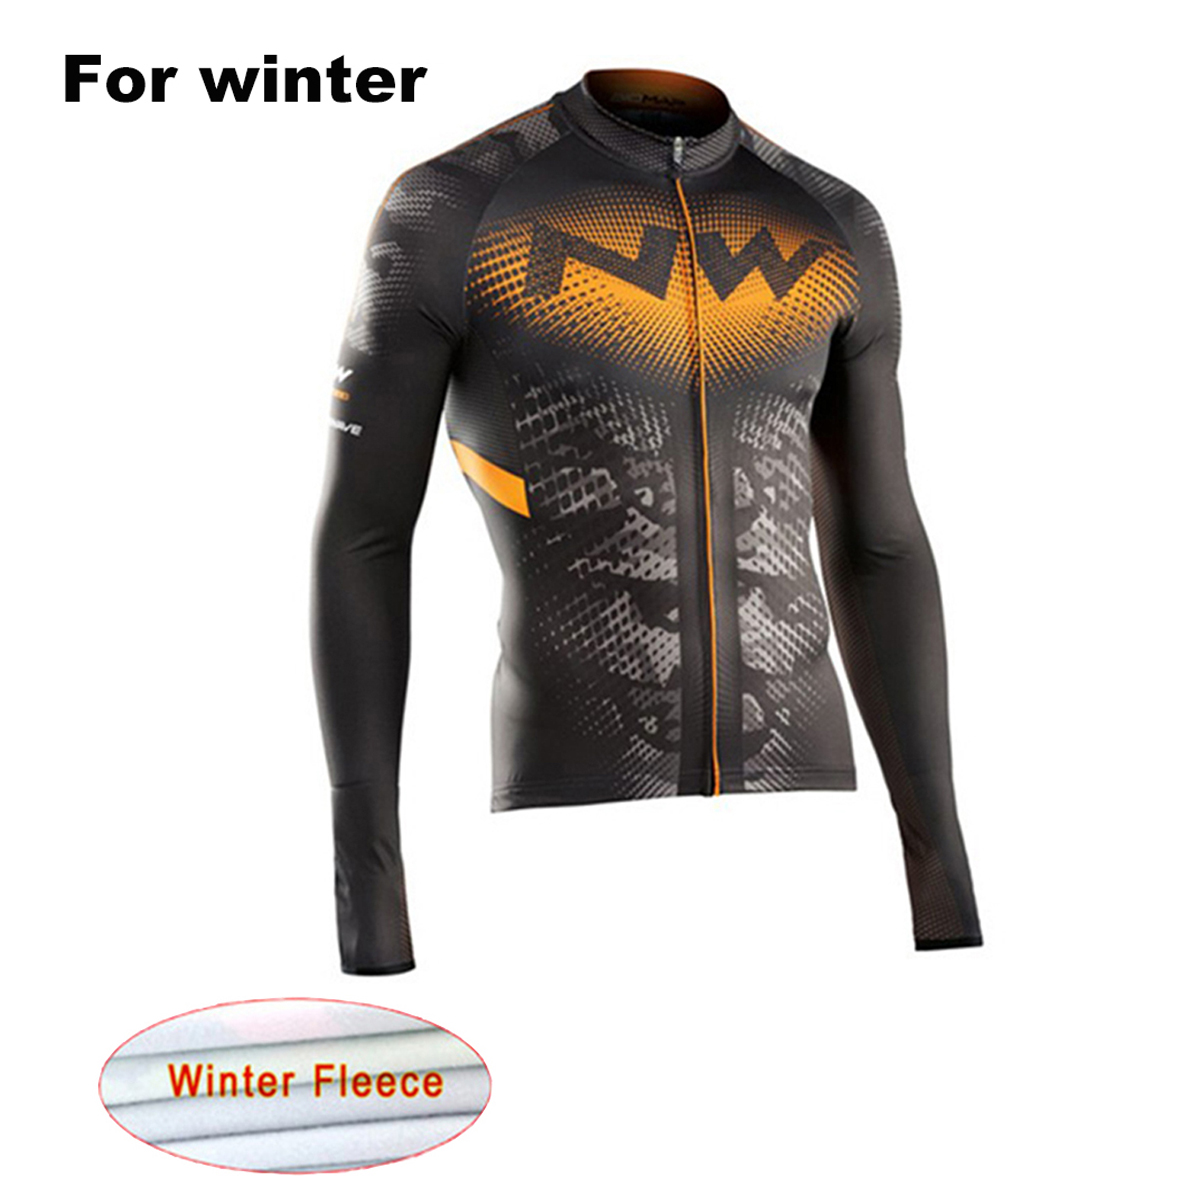 2017 NW Pro Team New Men`s Winter Thermal Fleece Bicycle Jersey Long Sleeve Warm MTB Cycling Clothing Ropa Ciclismo Maillot warm winter cycling protective mask men s and women s whol